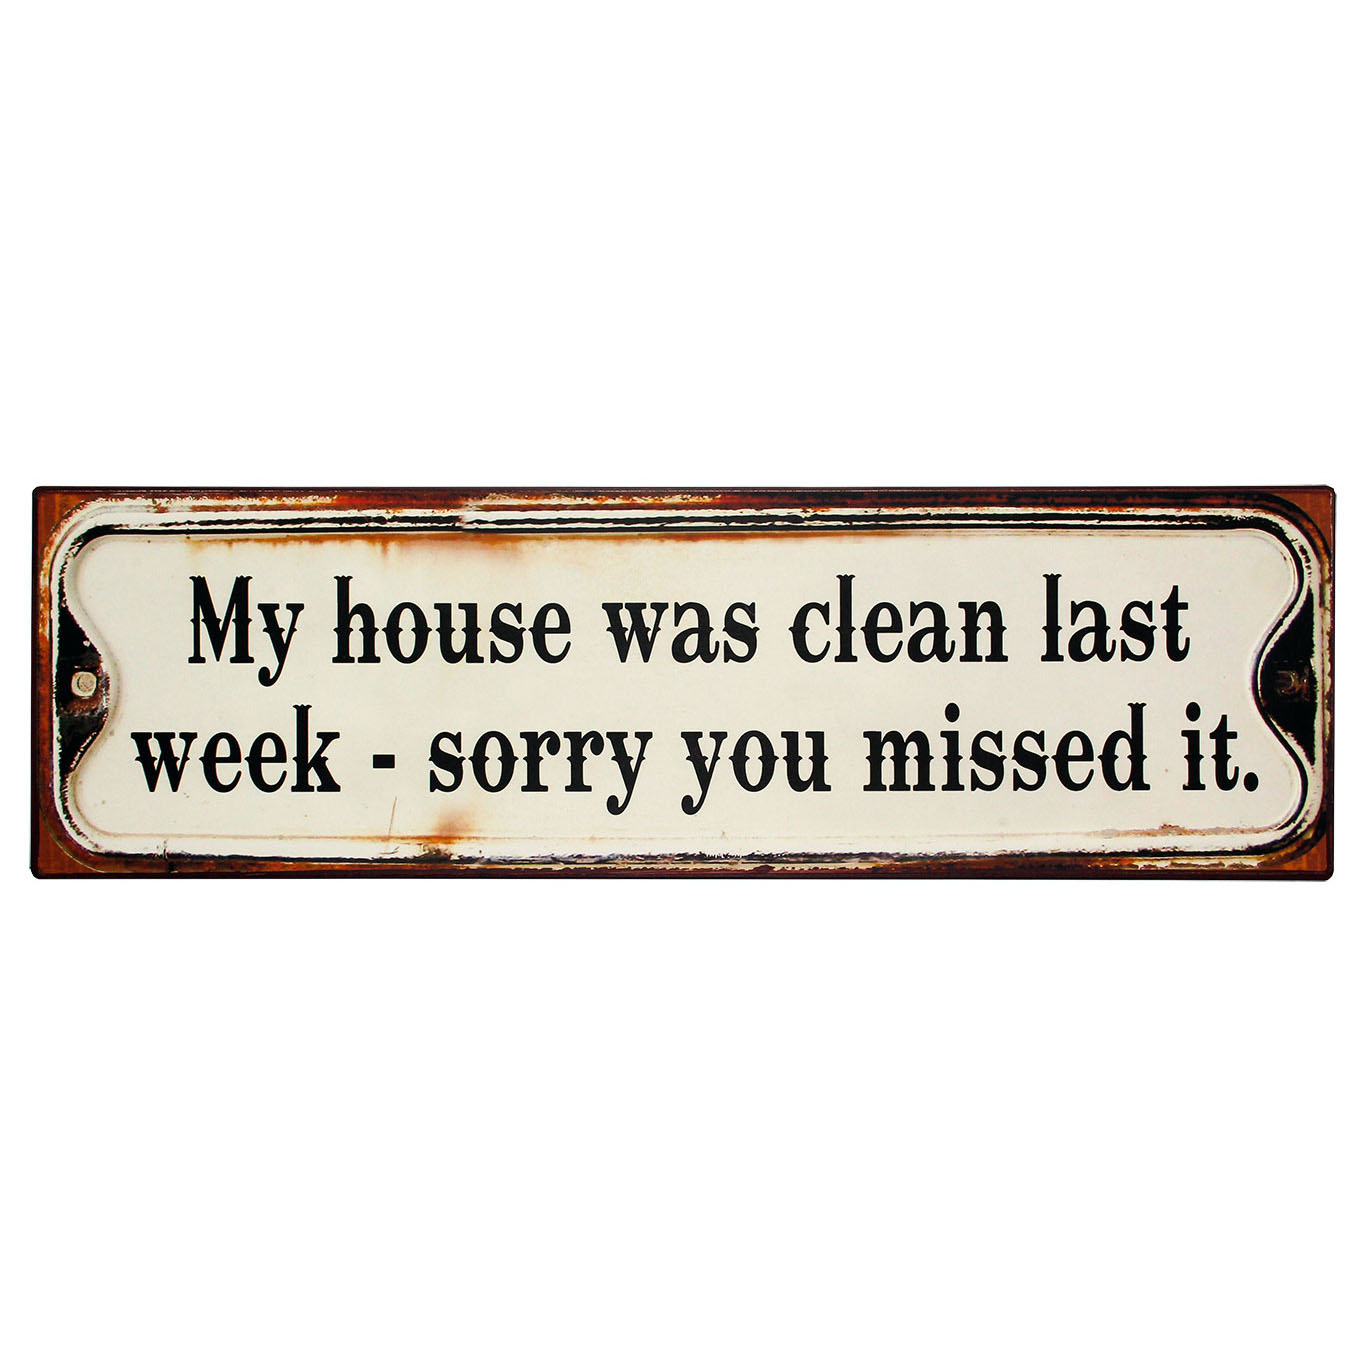 em1528-My-House-was-clean-last-week-Sorry-you-missed-it-spreukenbord-tekstbord-uitspraken-gezegde-spreuken-rustiek-bord-cadeau v